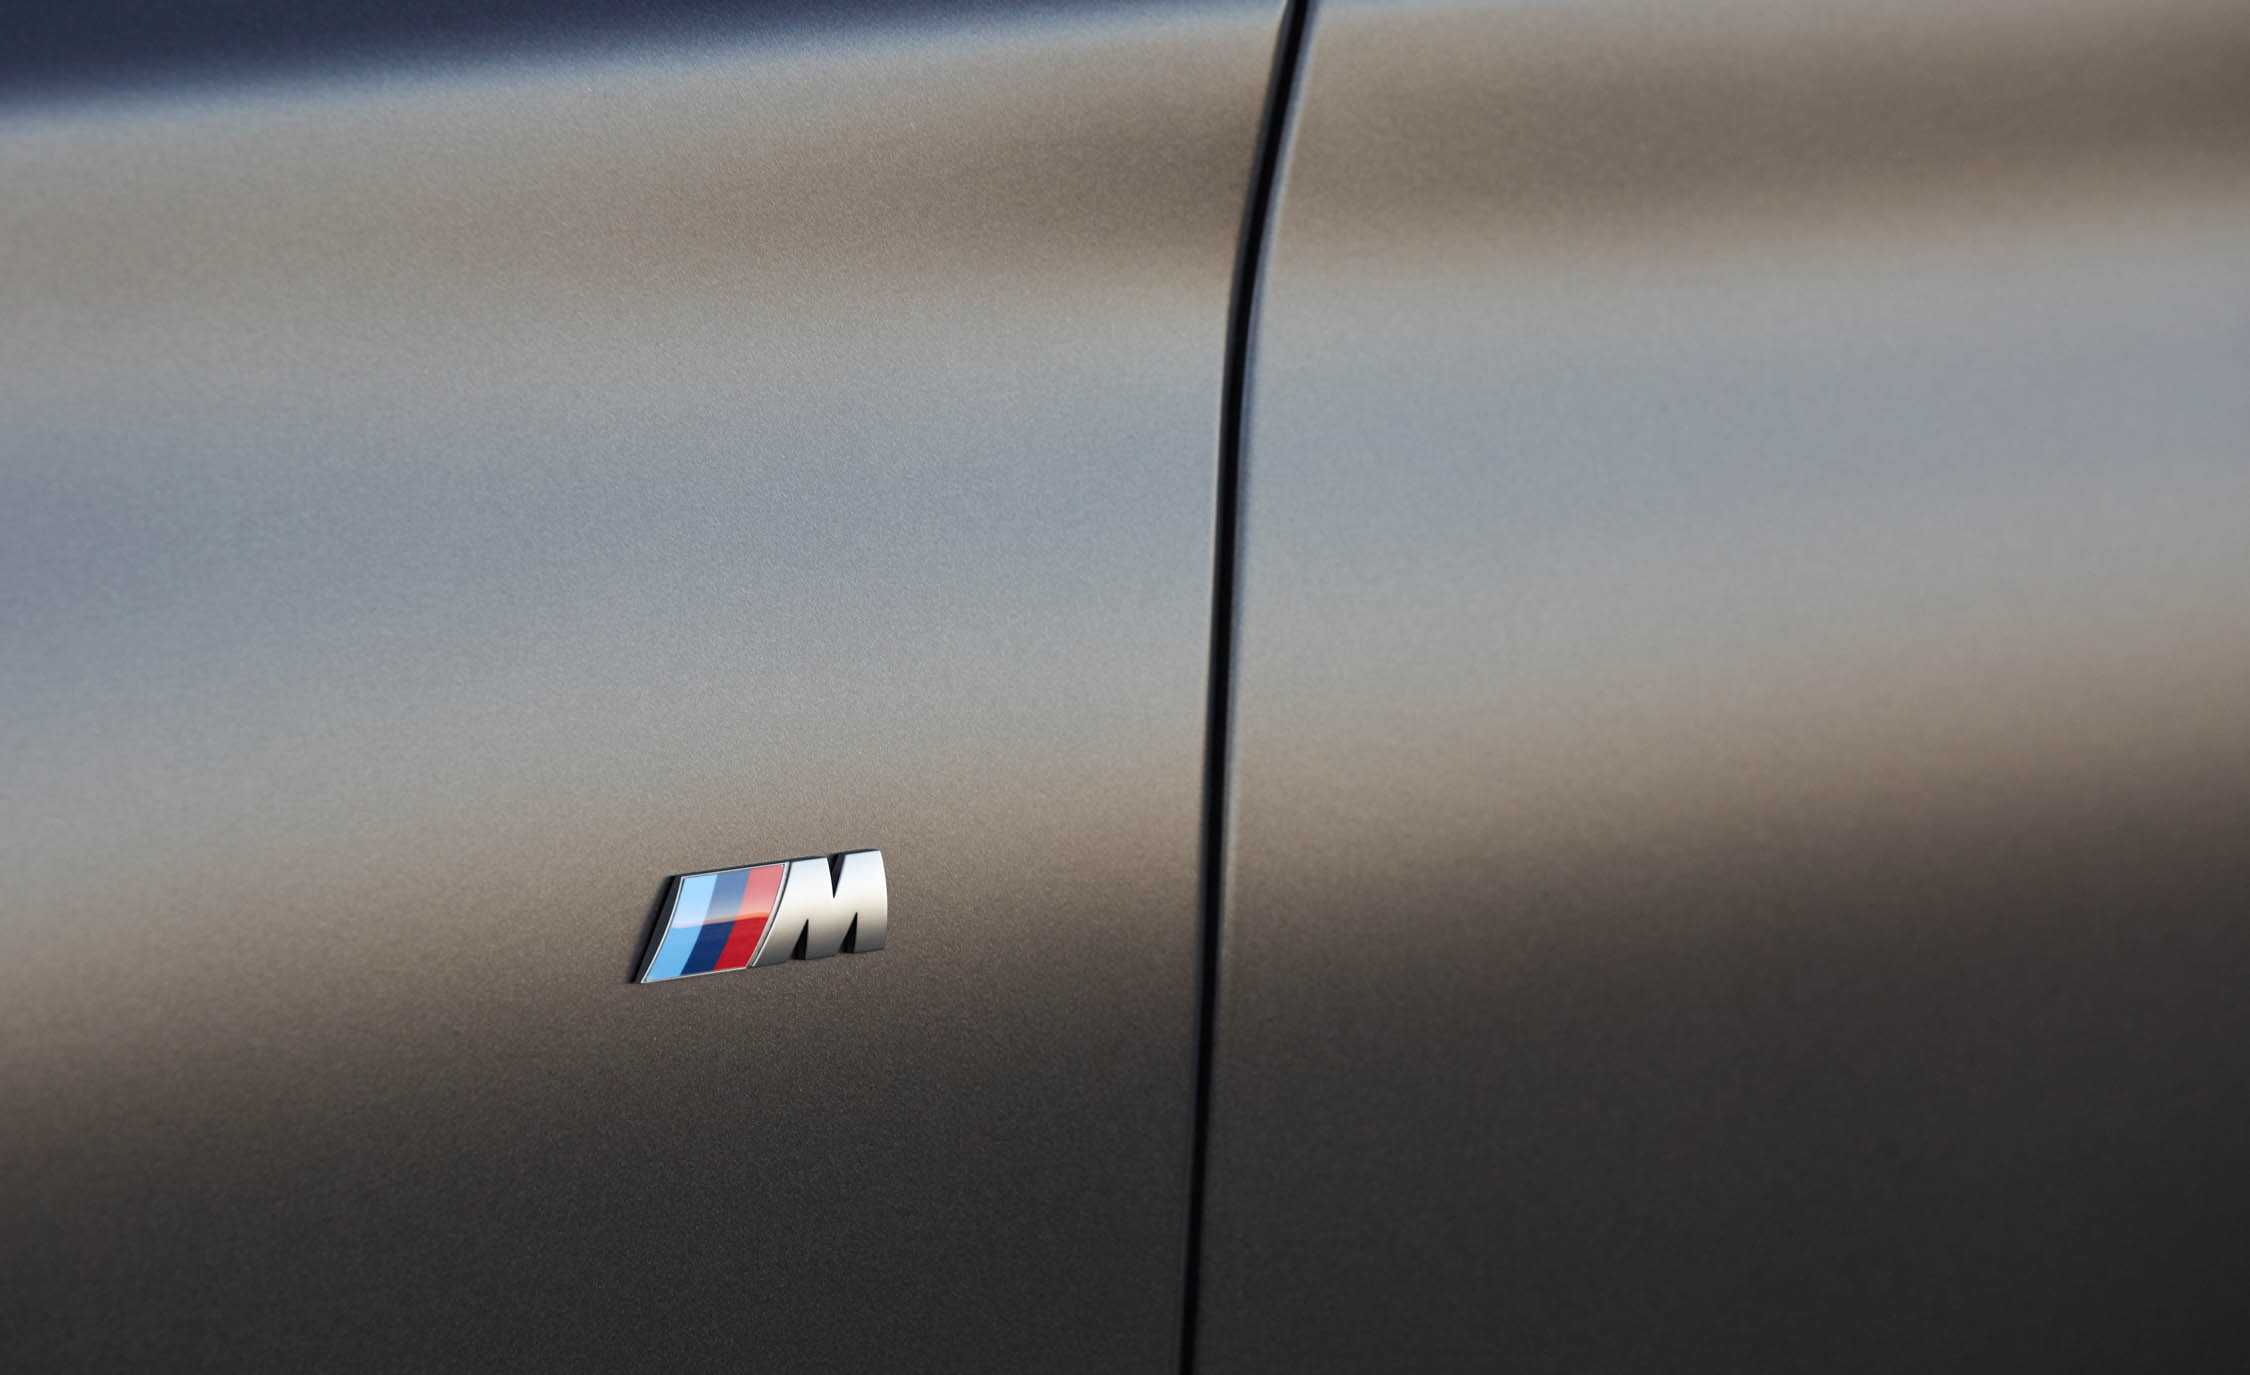 2017 BMW M760i XDrive Exterior View Side Emblem Front (Photo 21 of 76)